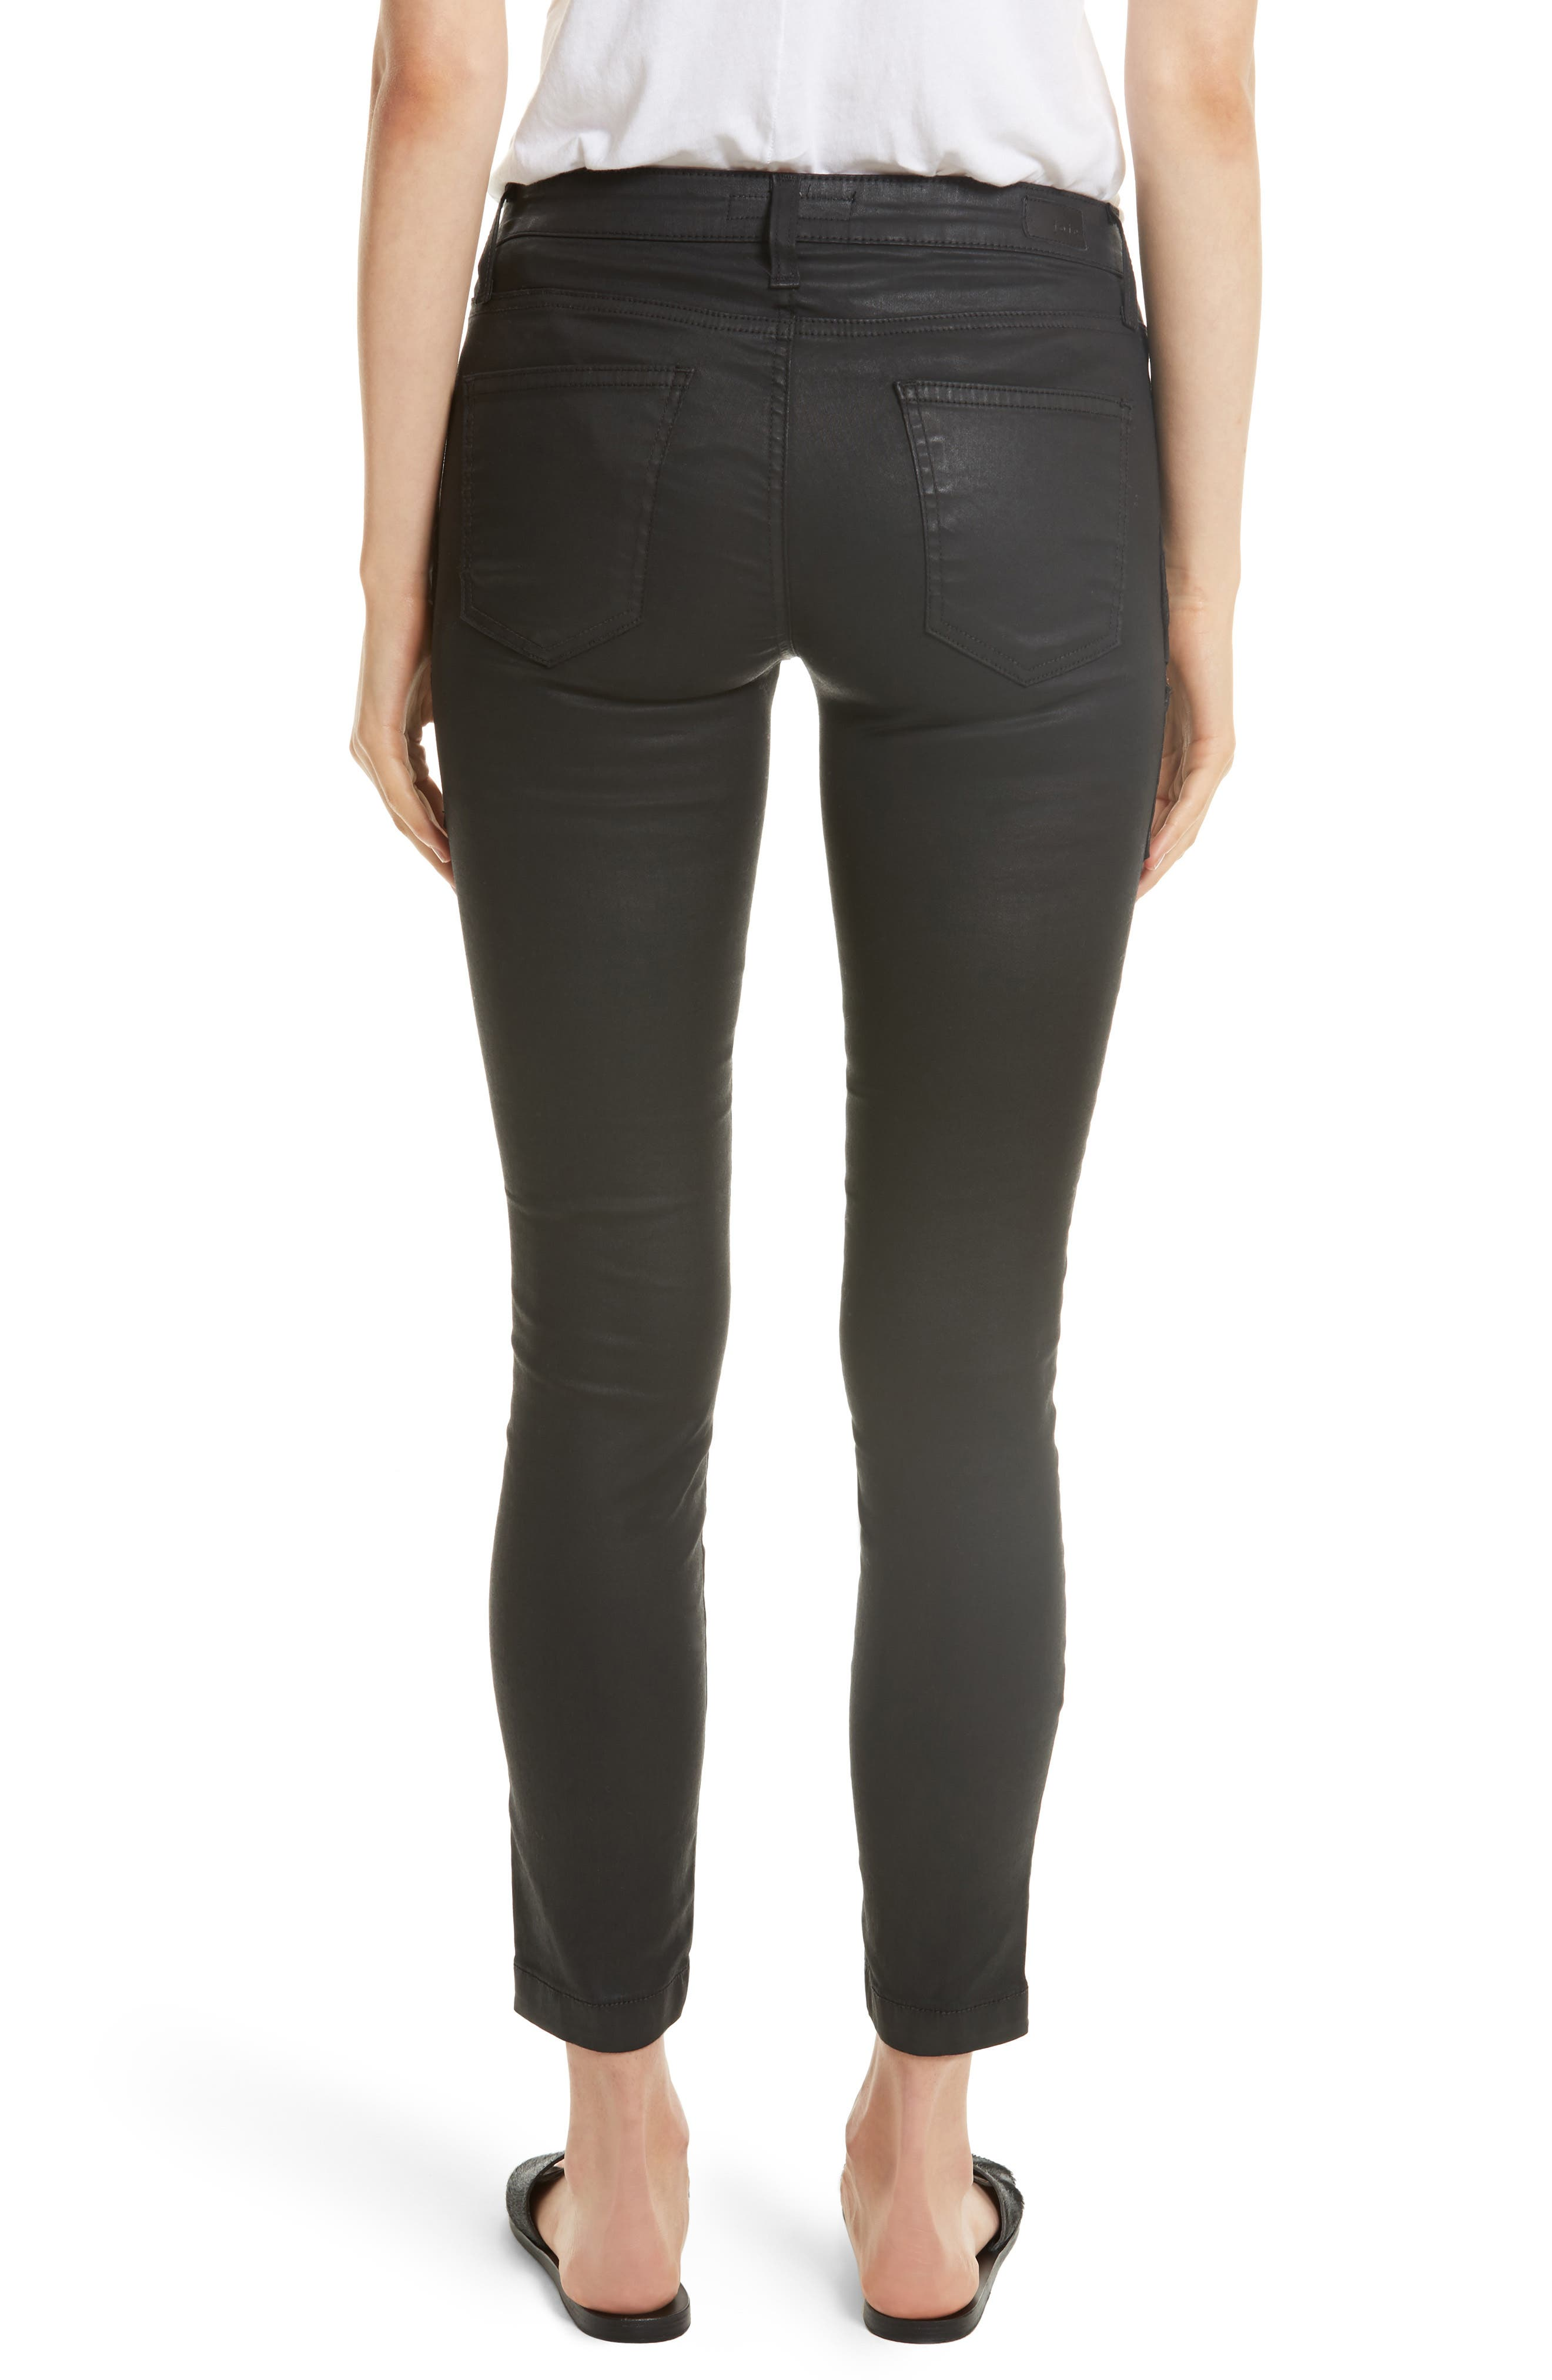 Park B Coated Skinny Jeans,                             Alternate thumbnail 2, color,                             002